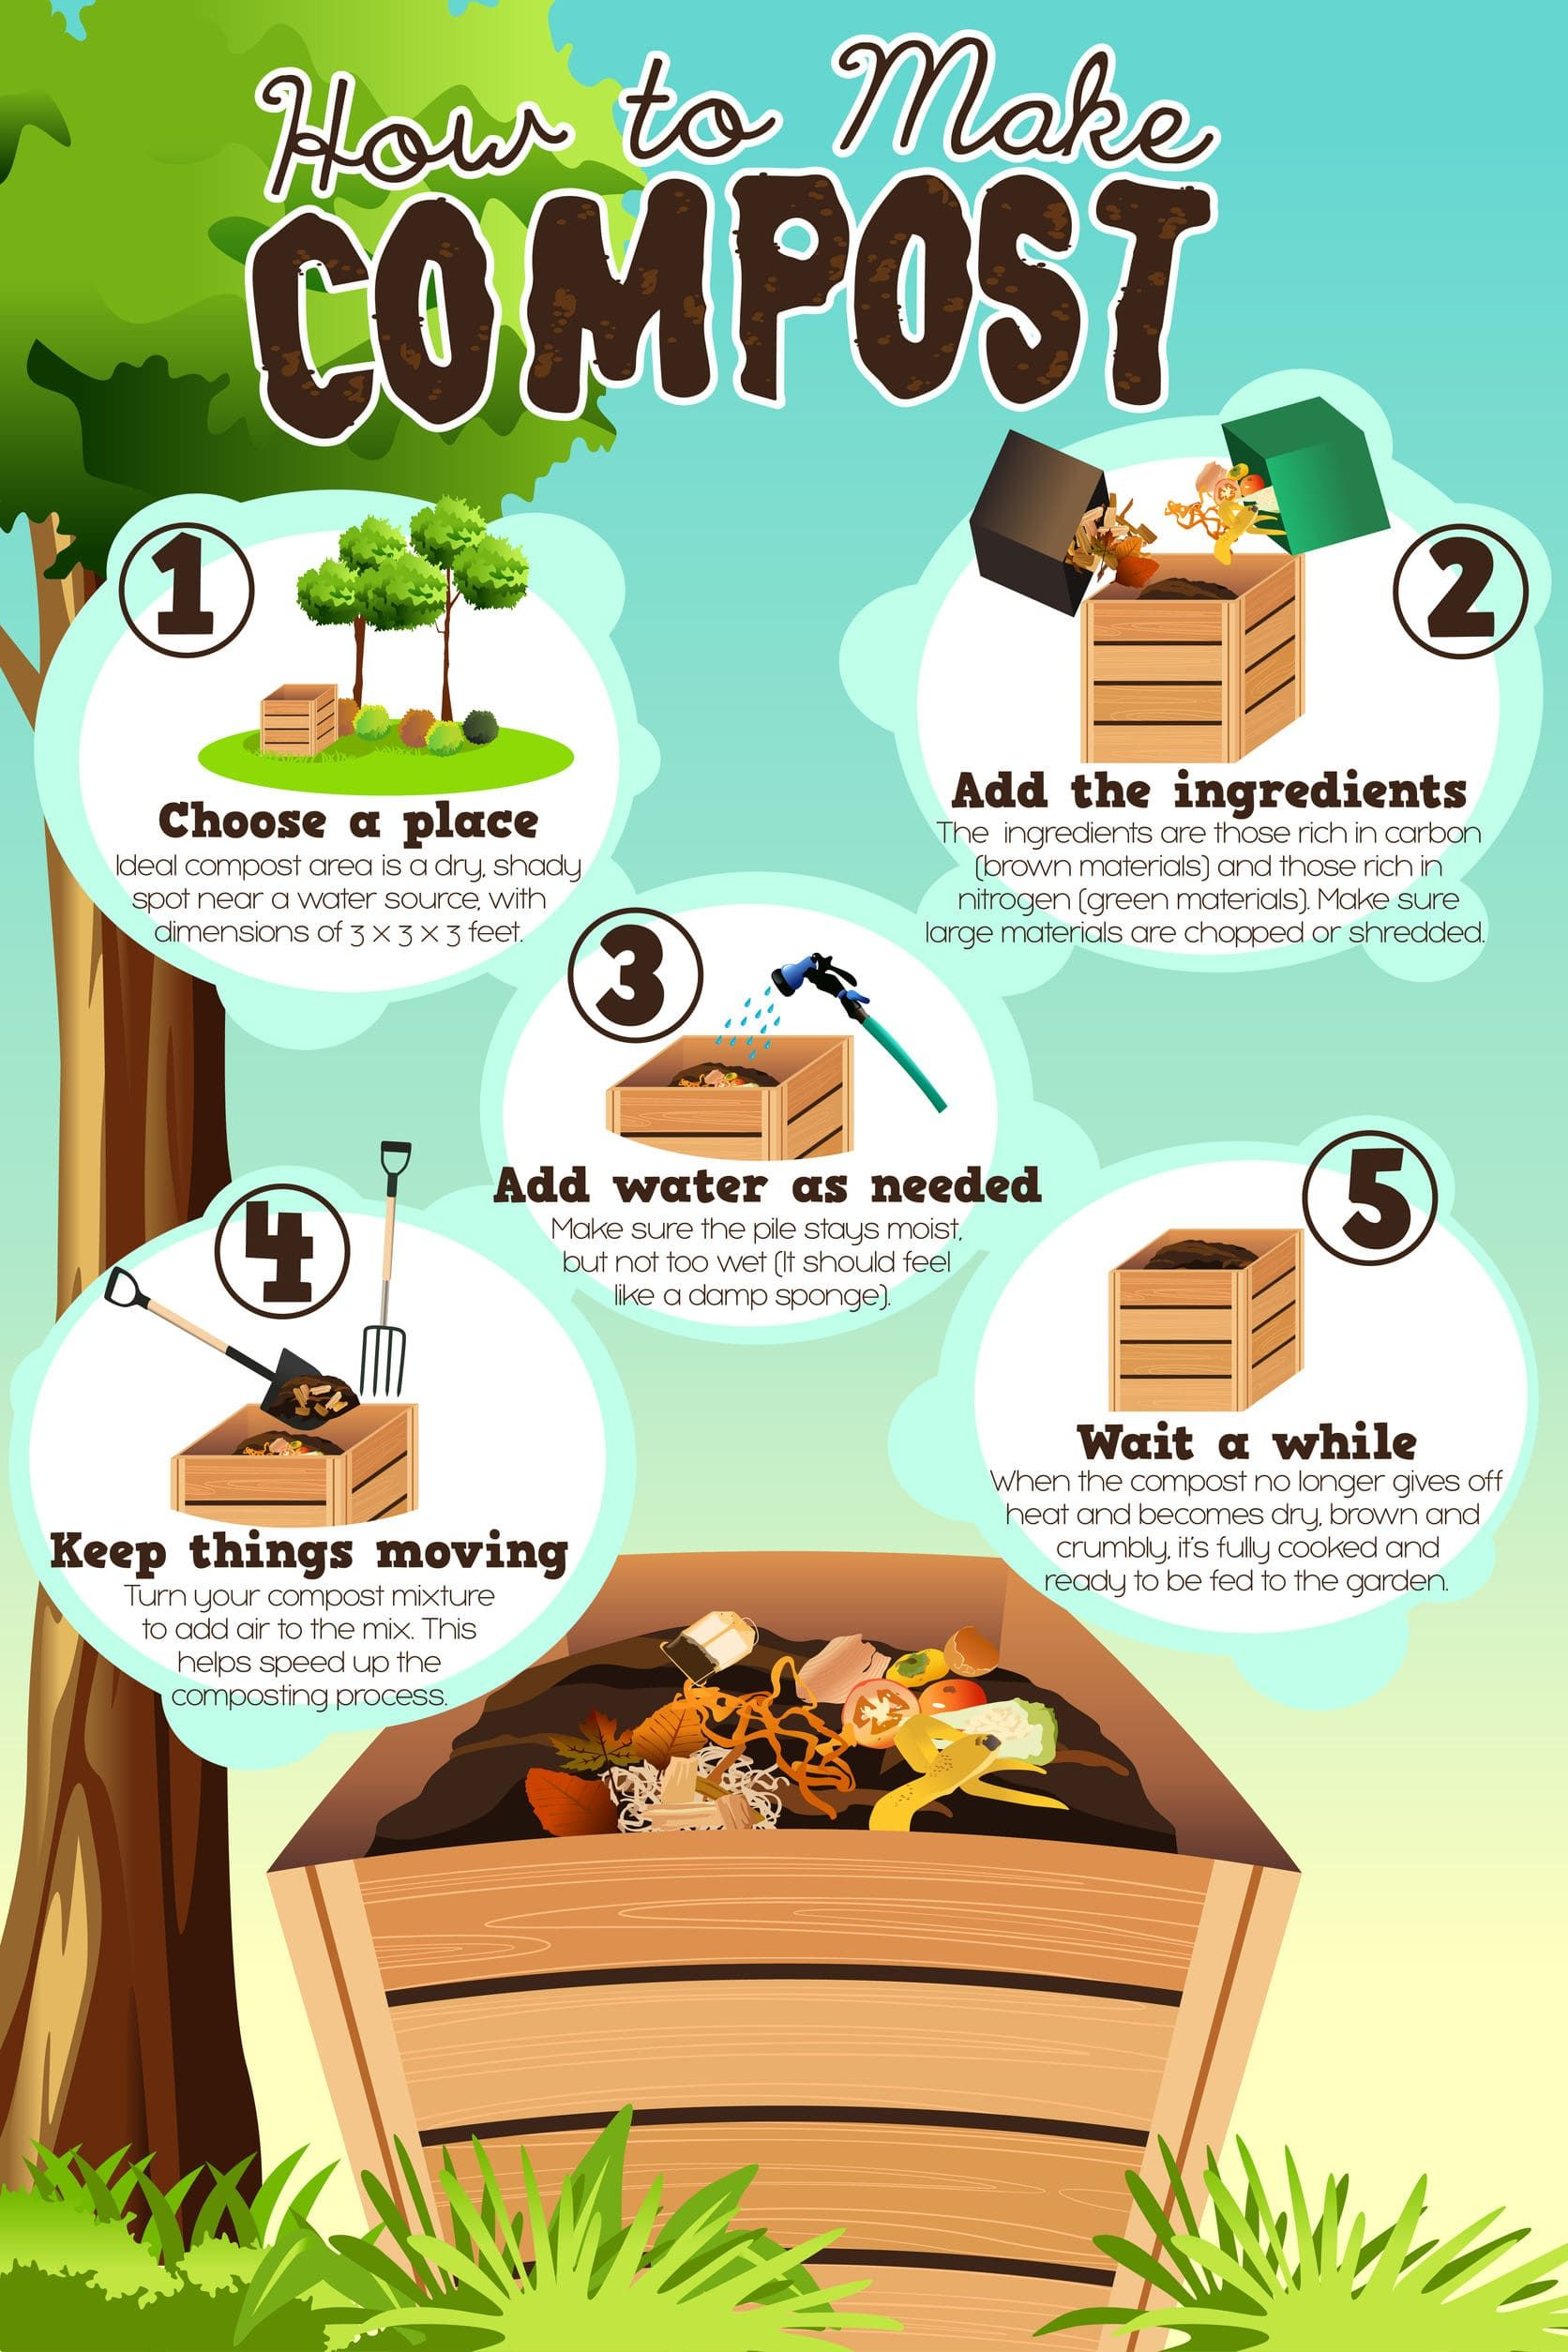 How to compost at home beginning to end that you need to